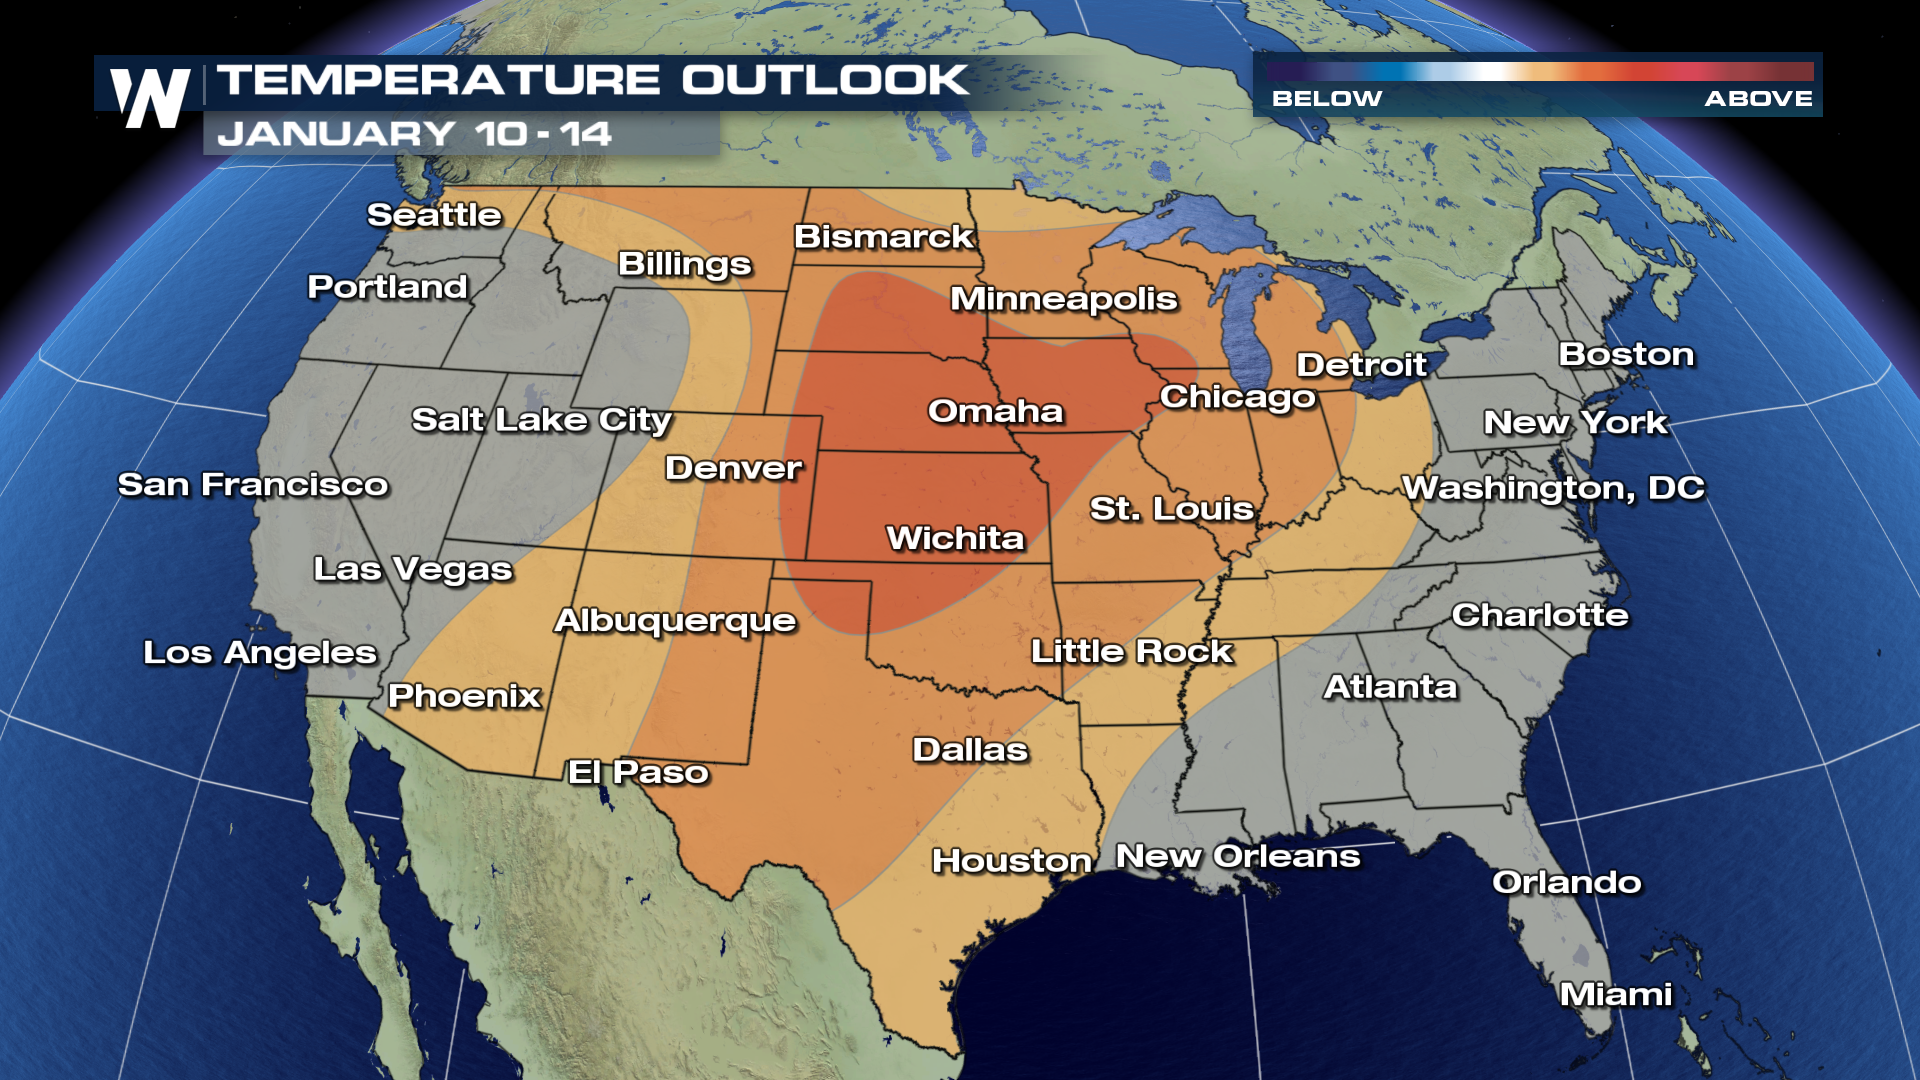 Looks Like Mild Weather Ahead For The Us Weathernation - Us-weather-map-with-temperatures